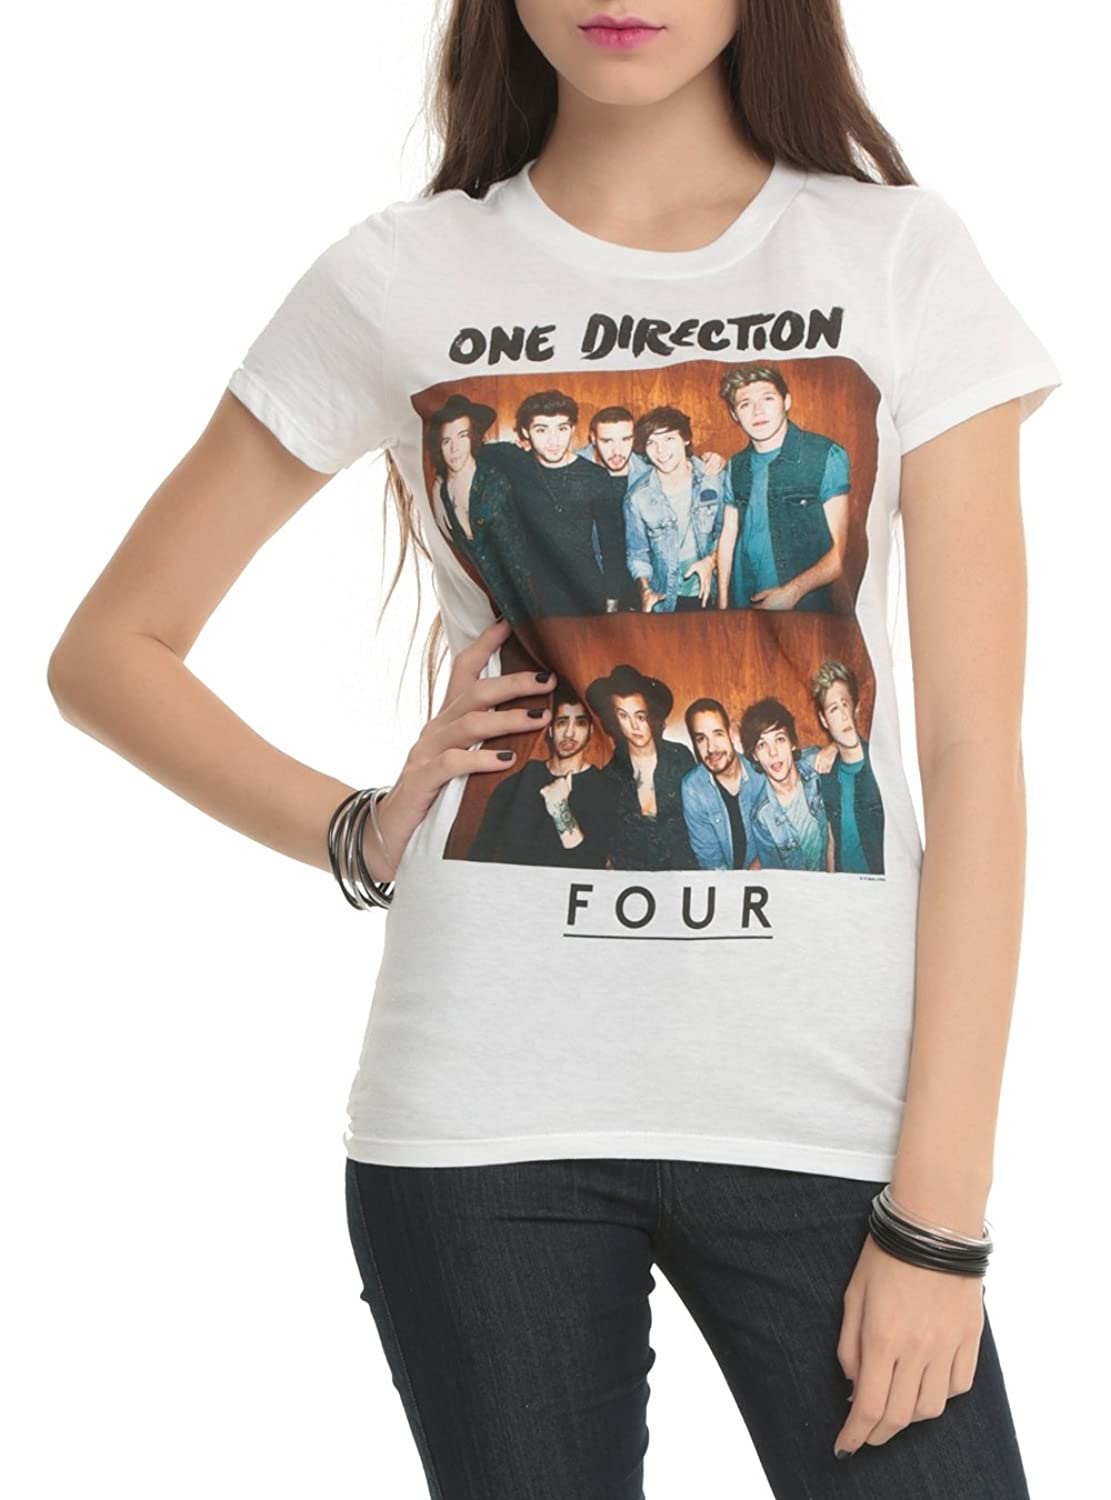 One Direction FOUR Girls T-Shirt сигнализатор поклевки hoxwell new direction k9 r9 5 1